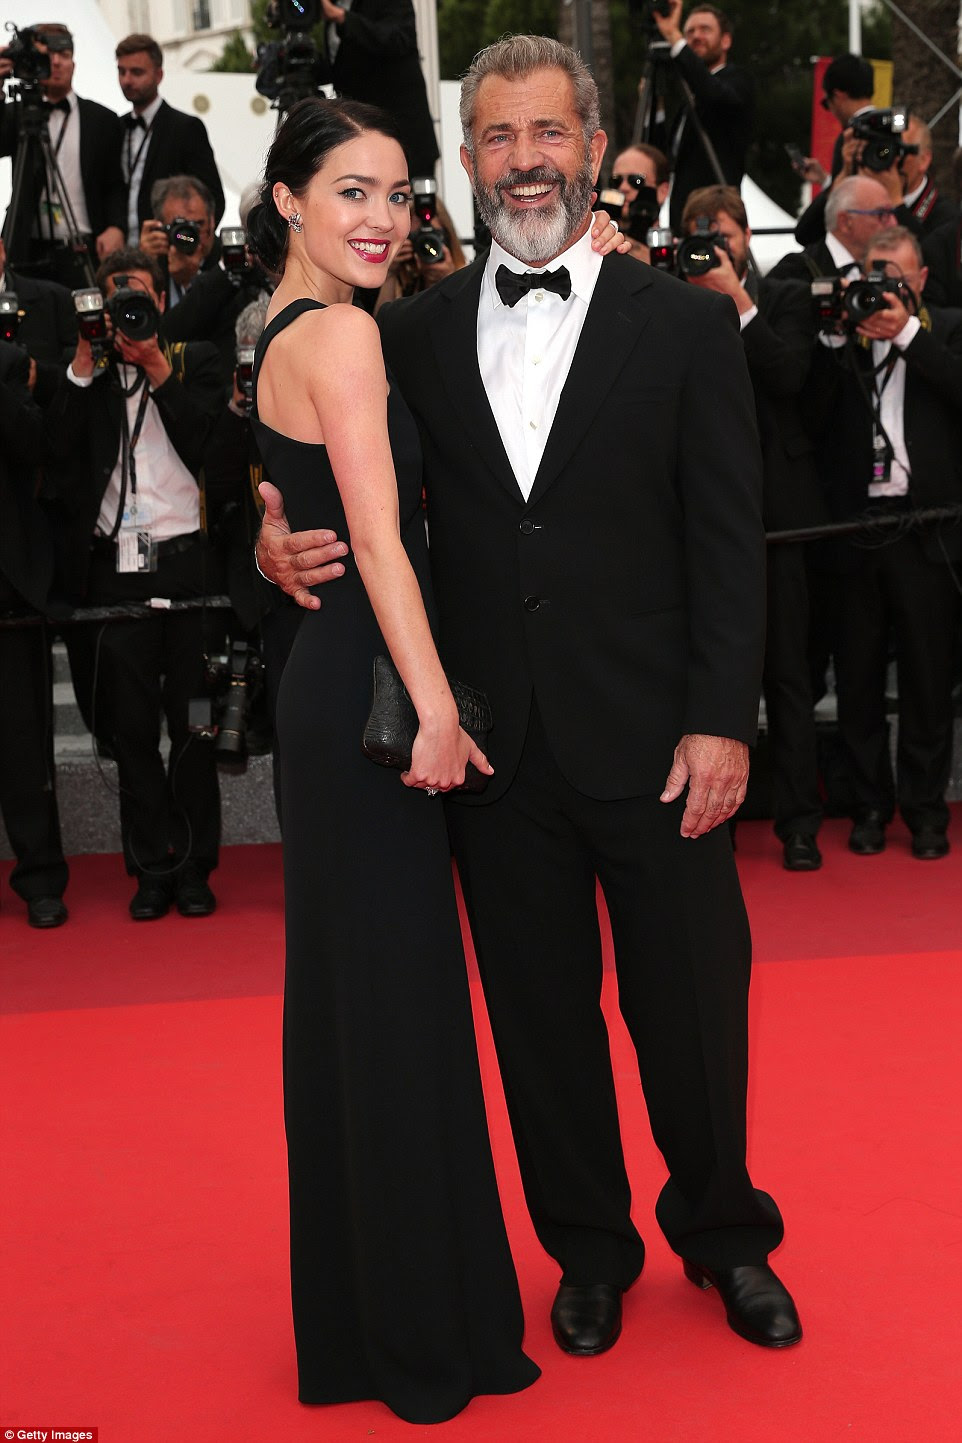 Mel Gibson, 60, and his girlfriend Rosalind Ross, 25, are clearly enjoying public displays of affection - as they proved when they attended the Cannes Film Festival Palme D'Or Award and closing ceremony on Sunday afternoon